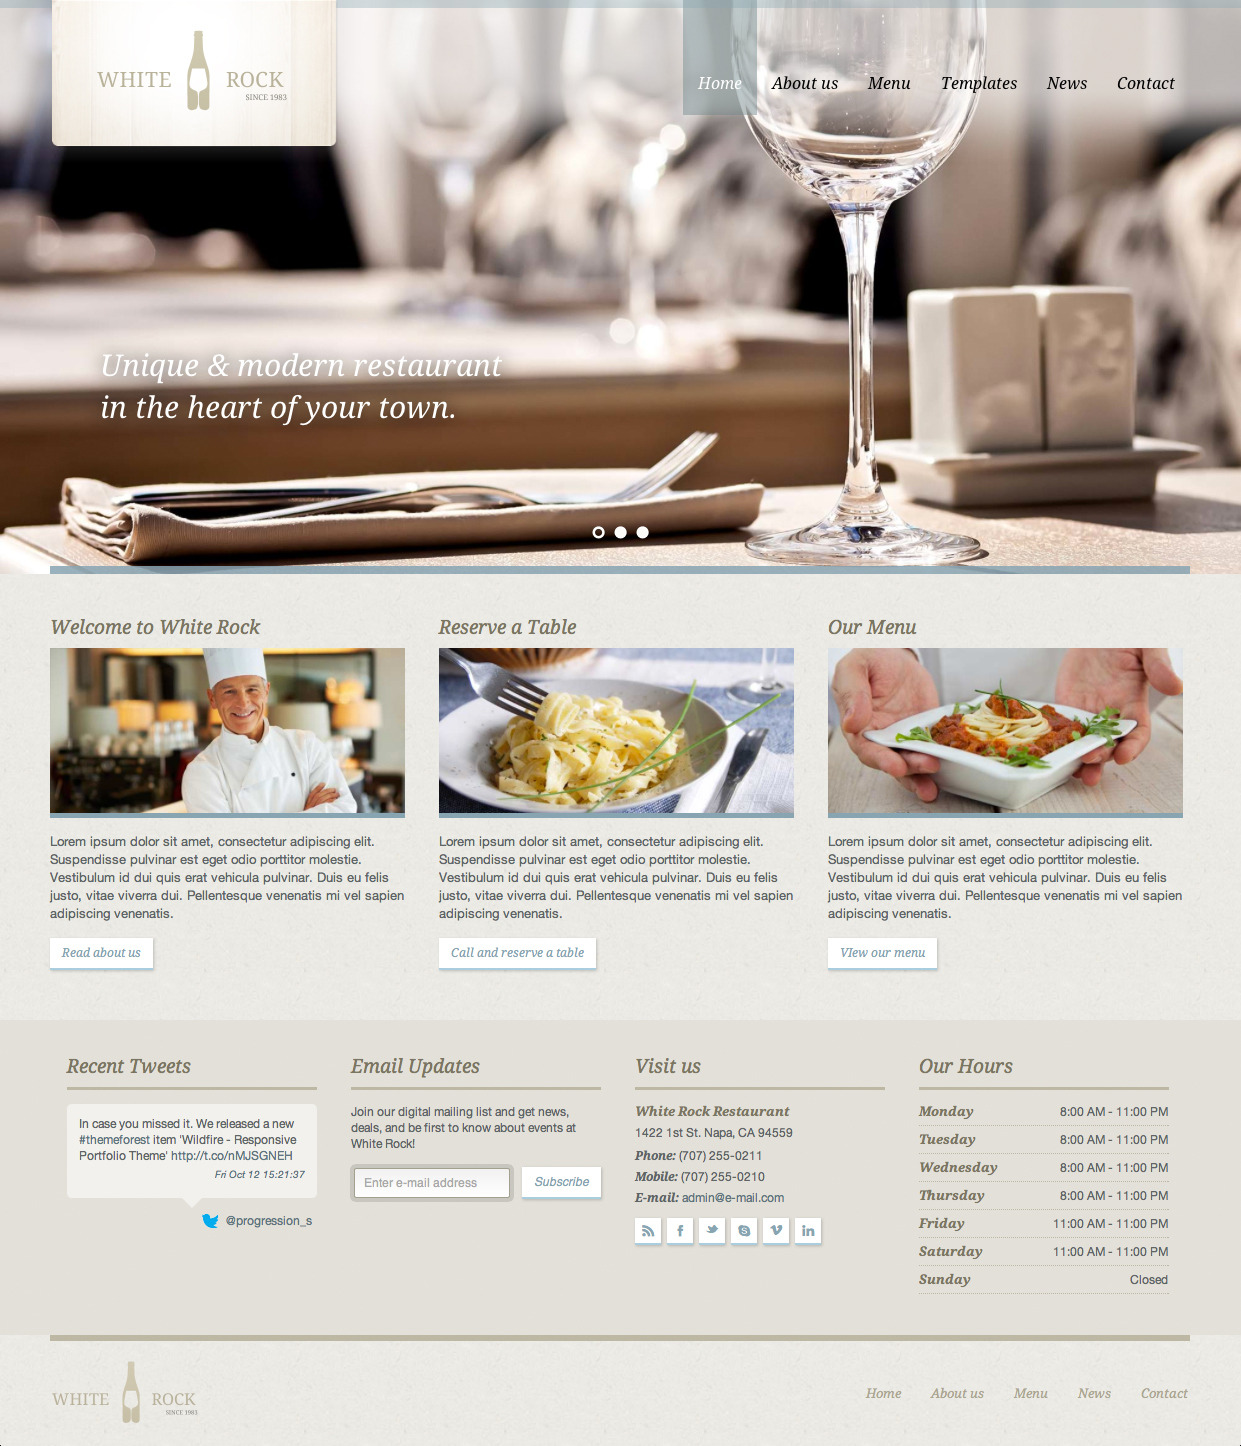 White Rock - Restaurant & Winery Theme - Premium wordpress themes|Restaurant